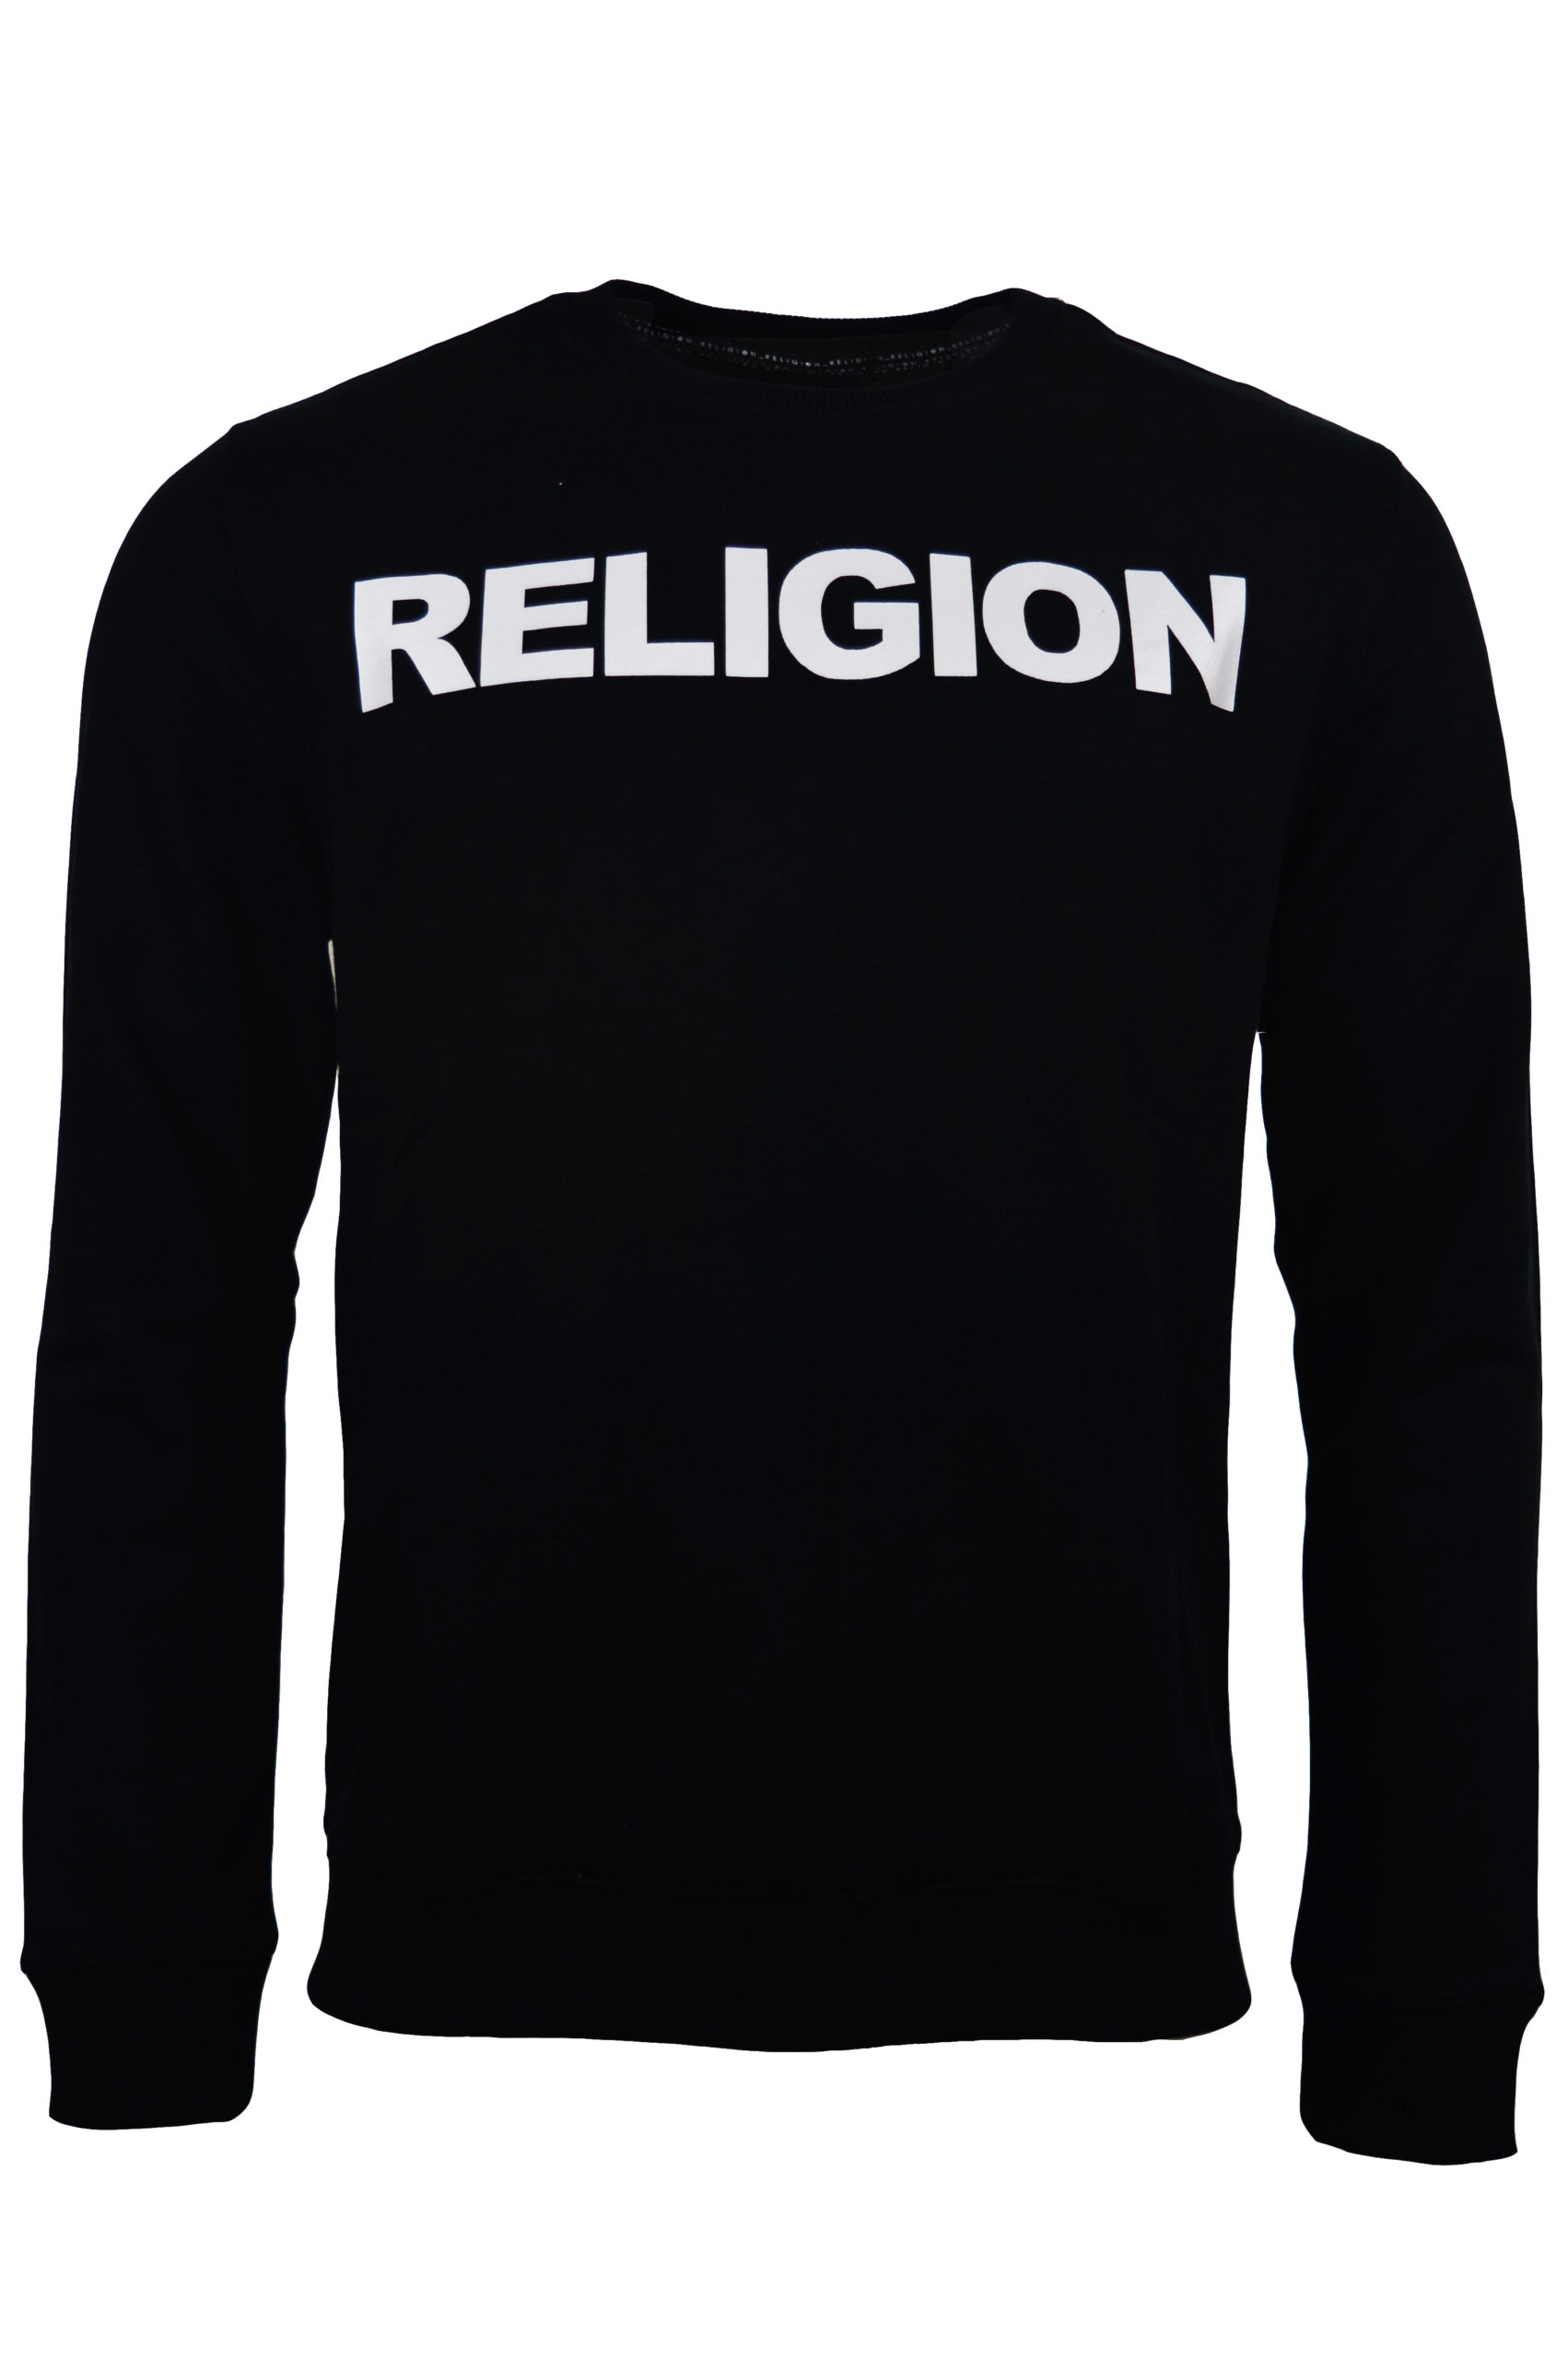 Religion - Reflect Sweat 2020 - Black